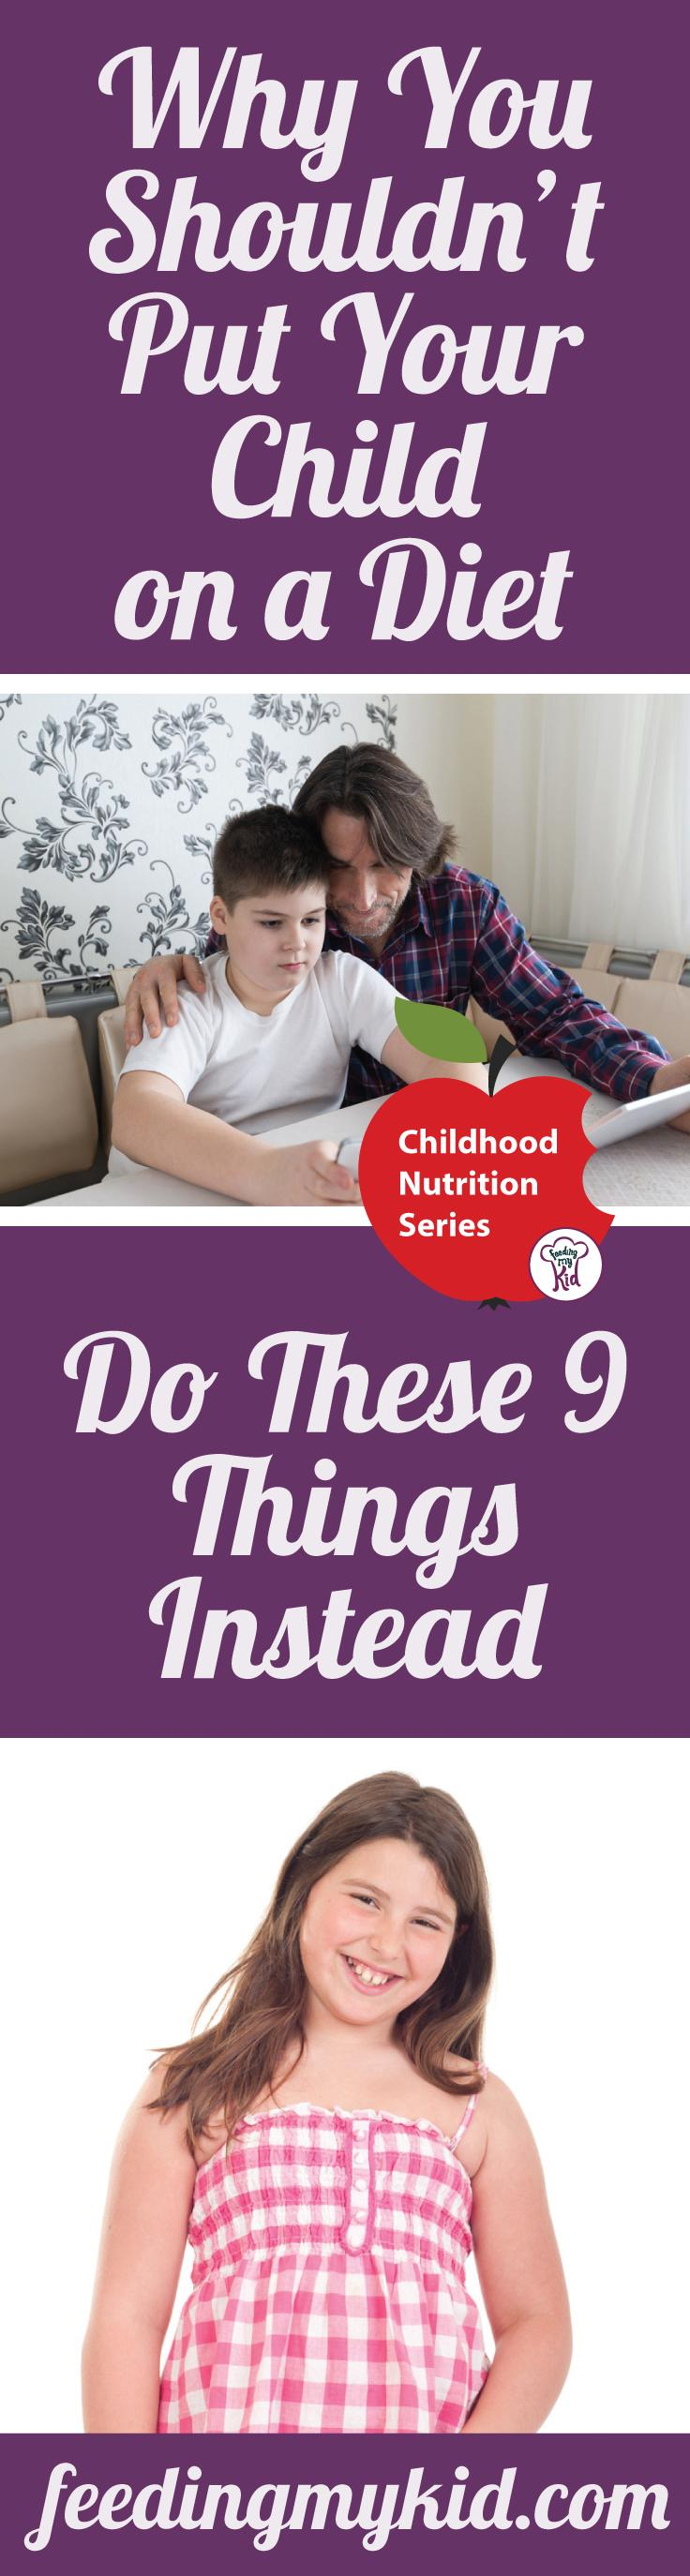 Creating a healthy diet for kids is essential in combating childhood obesity. But we shouldn't think of it as a diet. Find out why here. Feeding My Kid is a filled with all the information you need about how to raise your kids, from healthful tips to great recipes. #obesity #kidshealth #parenting